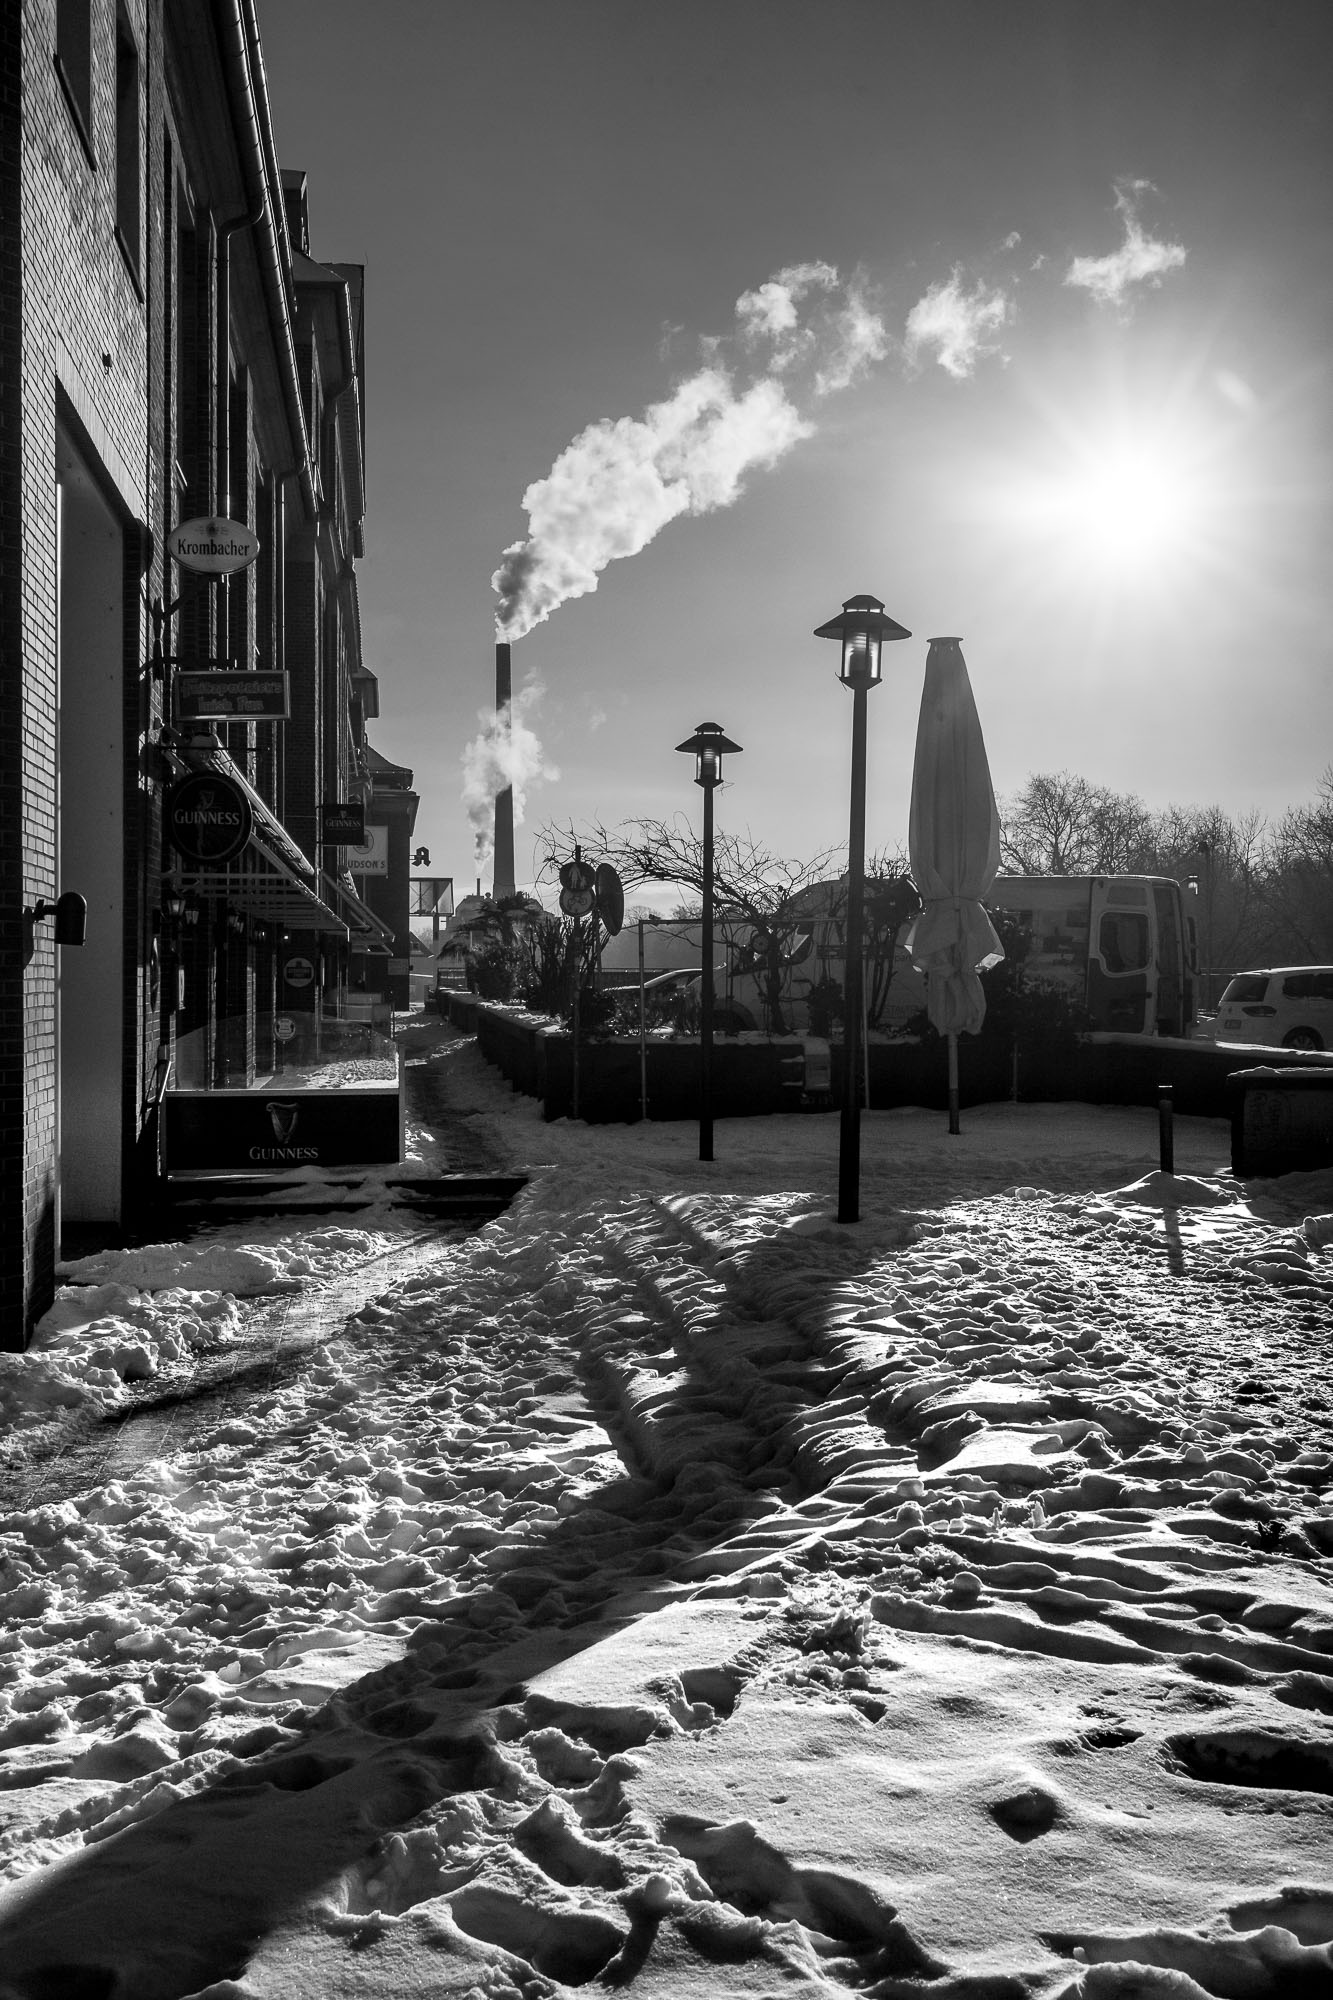 Snow covered square infront of a smoking chimney and a clear sky with the sun coming up